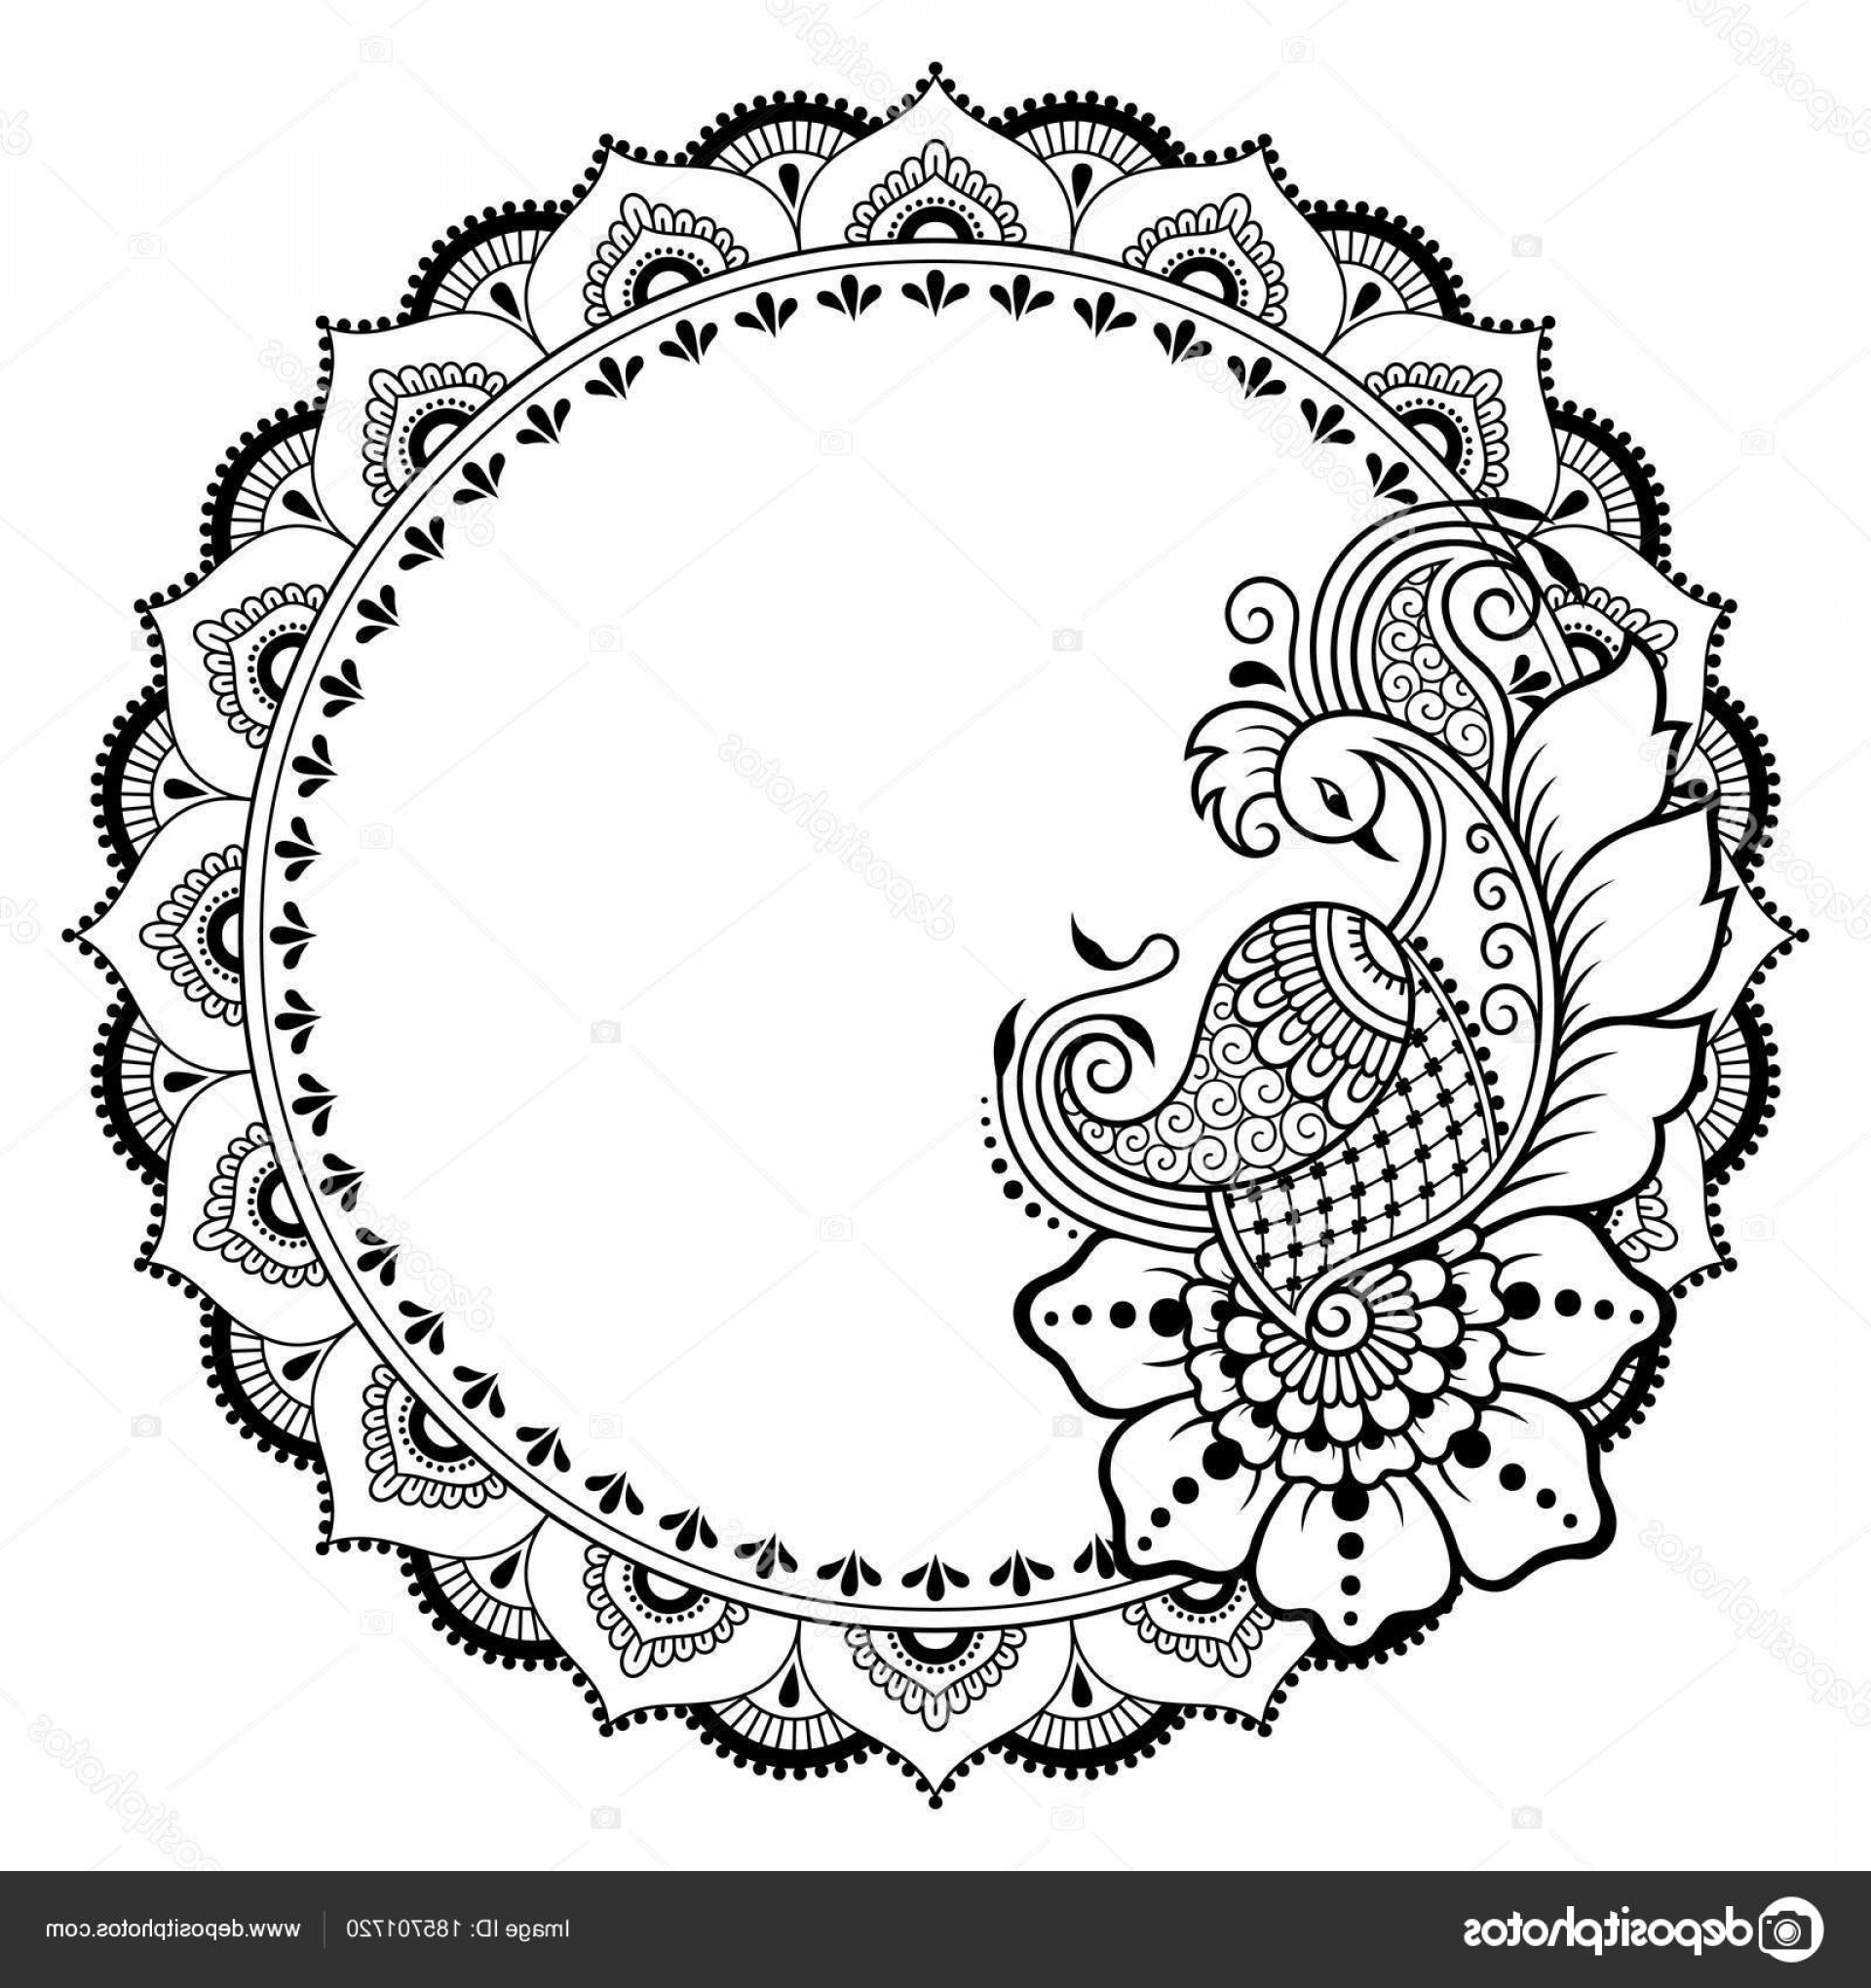 Tattoo Templates Vector Frames: Stock Illustration Henna Tattoo Flower Template Patterned